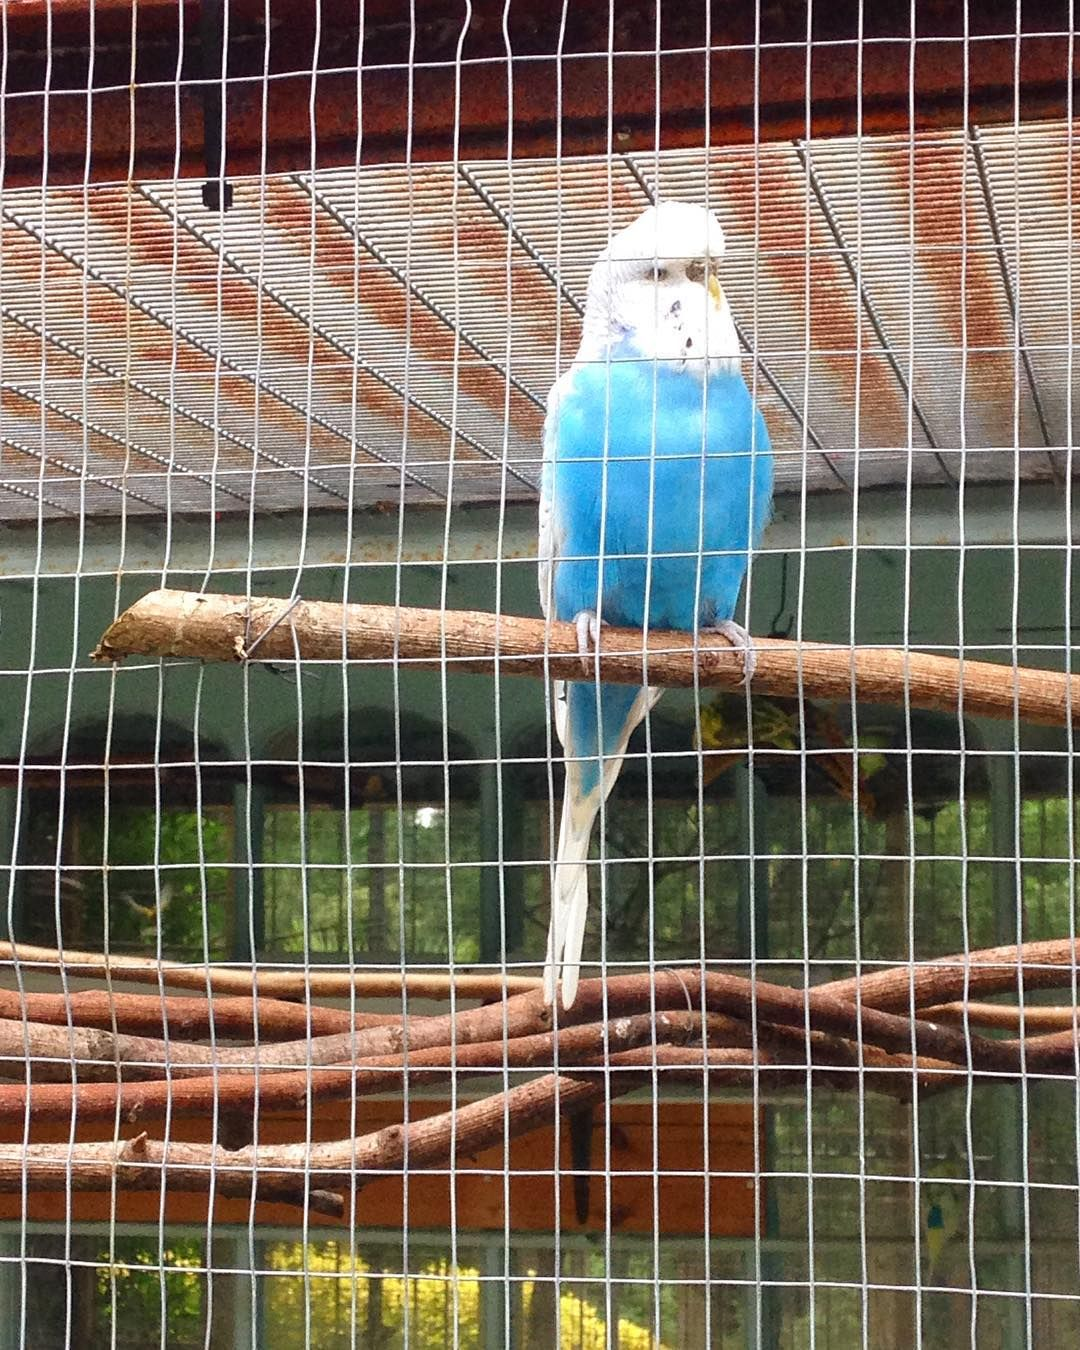 And a budgie